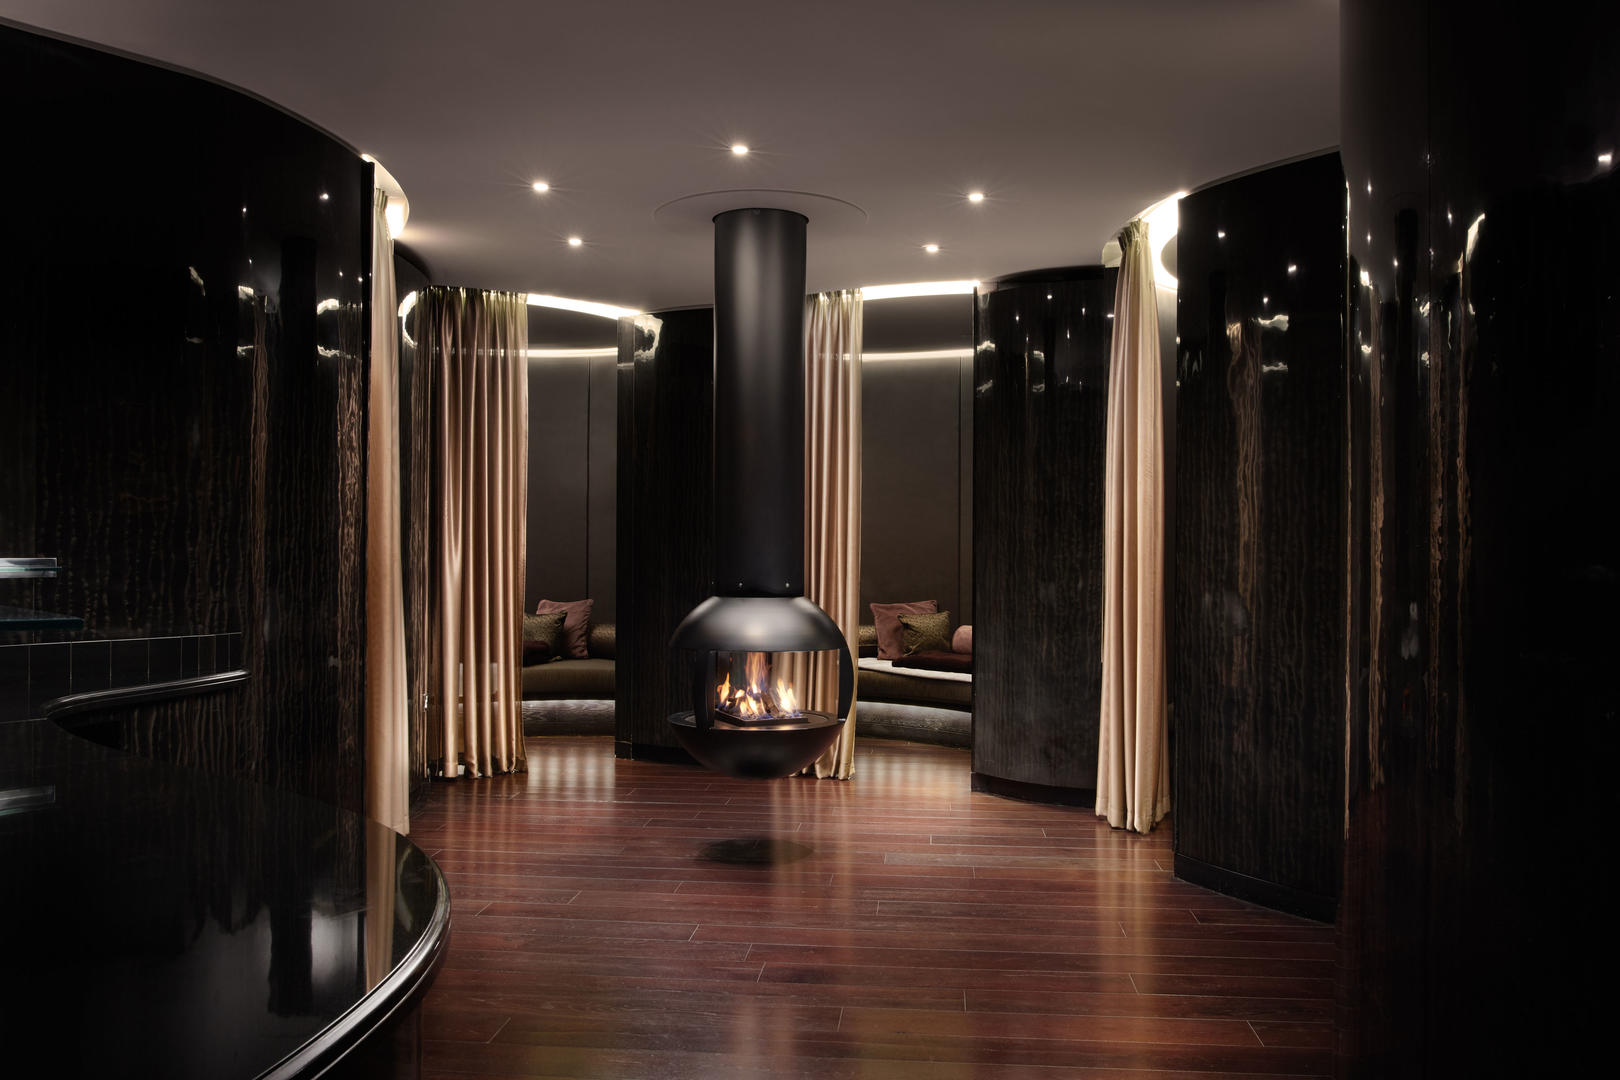 Corinthia-Hotel-London-spa-schlafende Pods